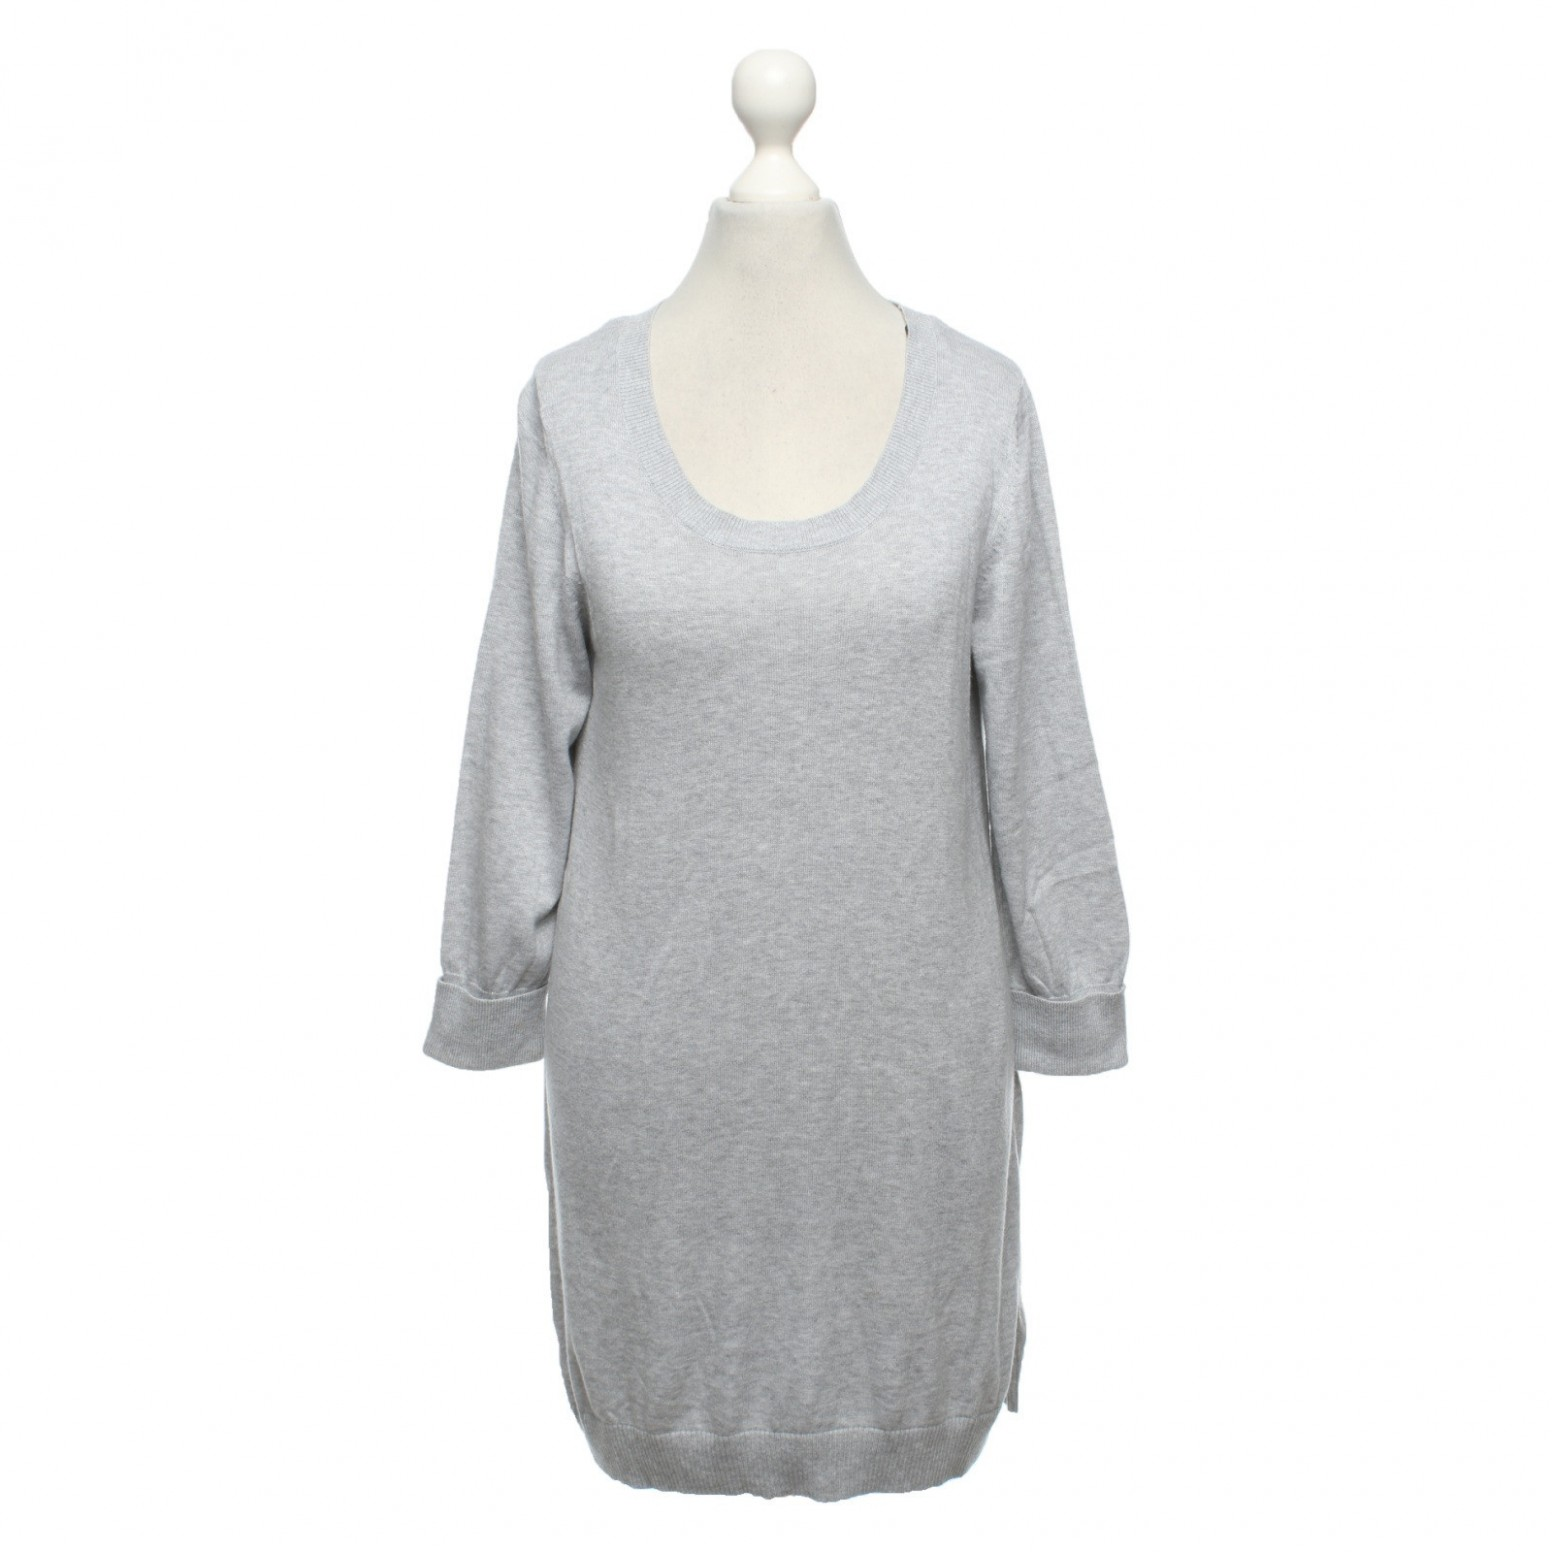 repeat cashmere dress in grey second hand repeat cashmere dress cashmere kleid